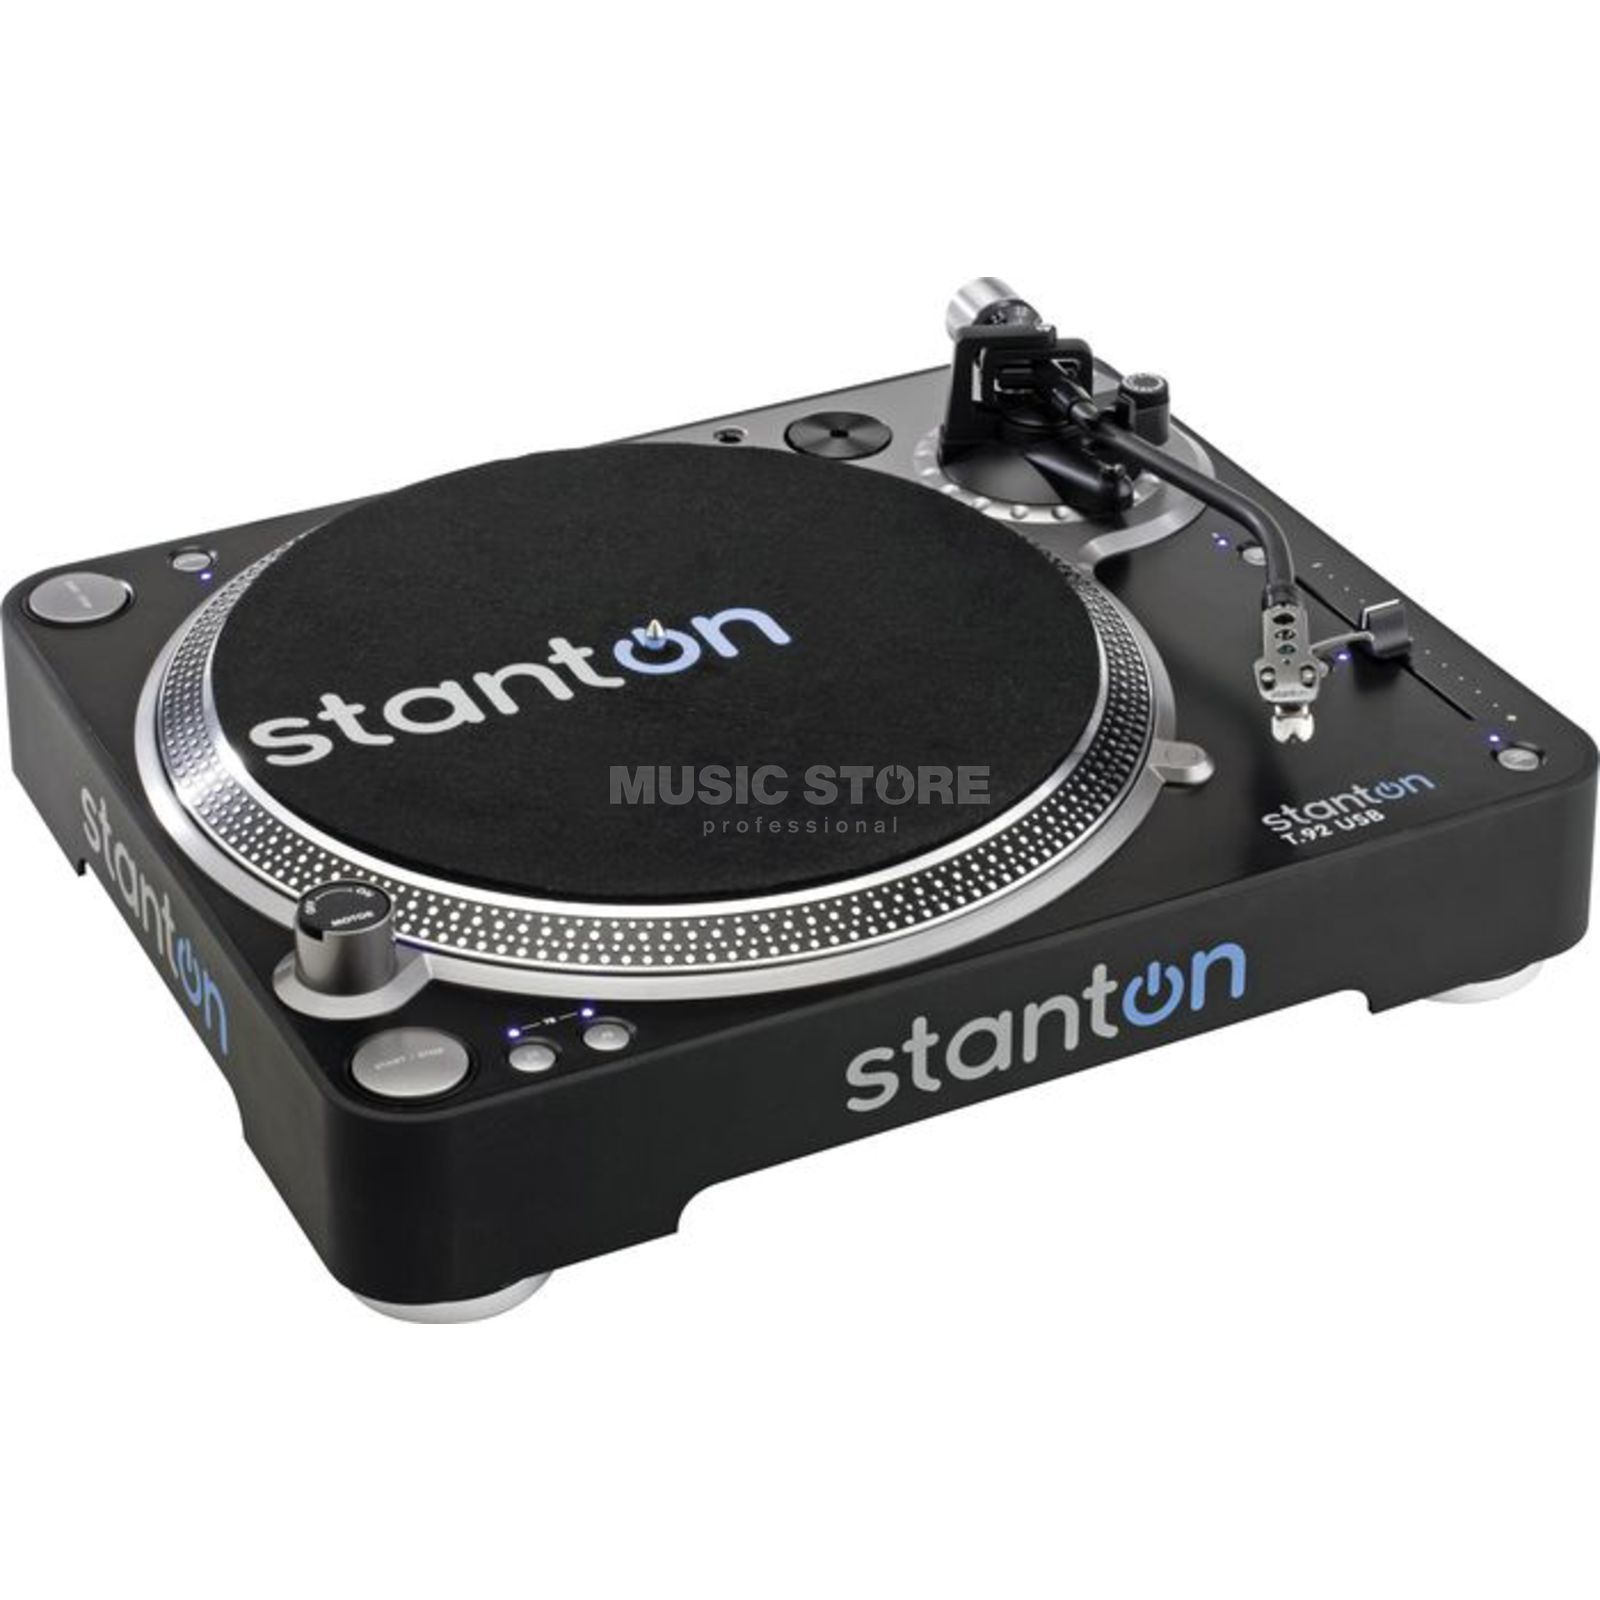 Stanton T.92 USB Turntable incl. Cakewalk Pyro 5 Software Immagine prodotto